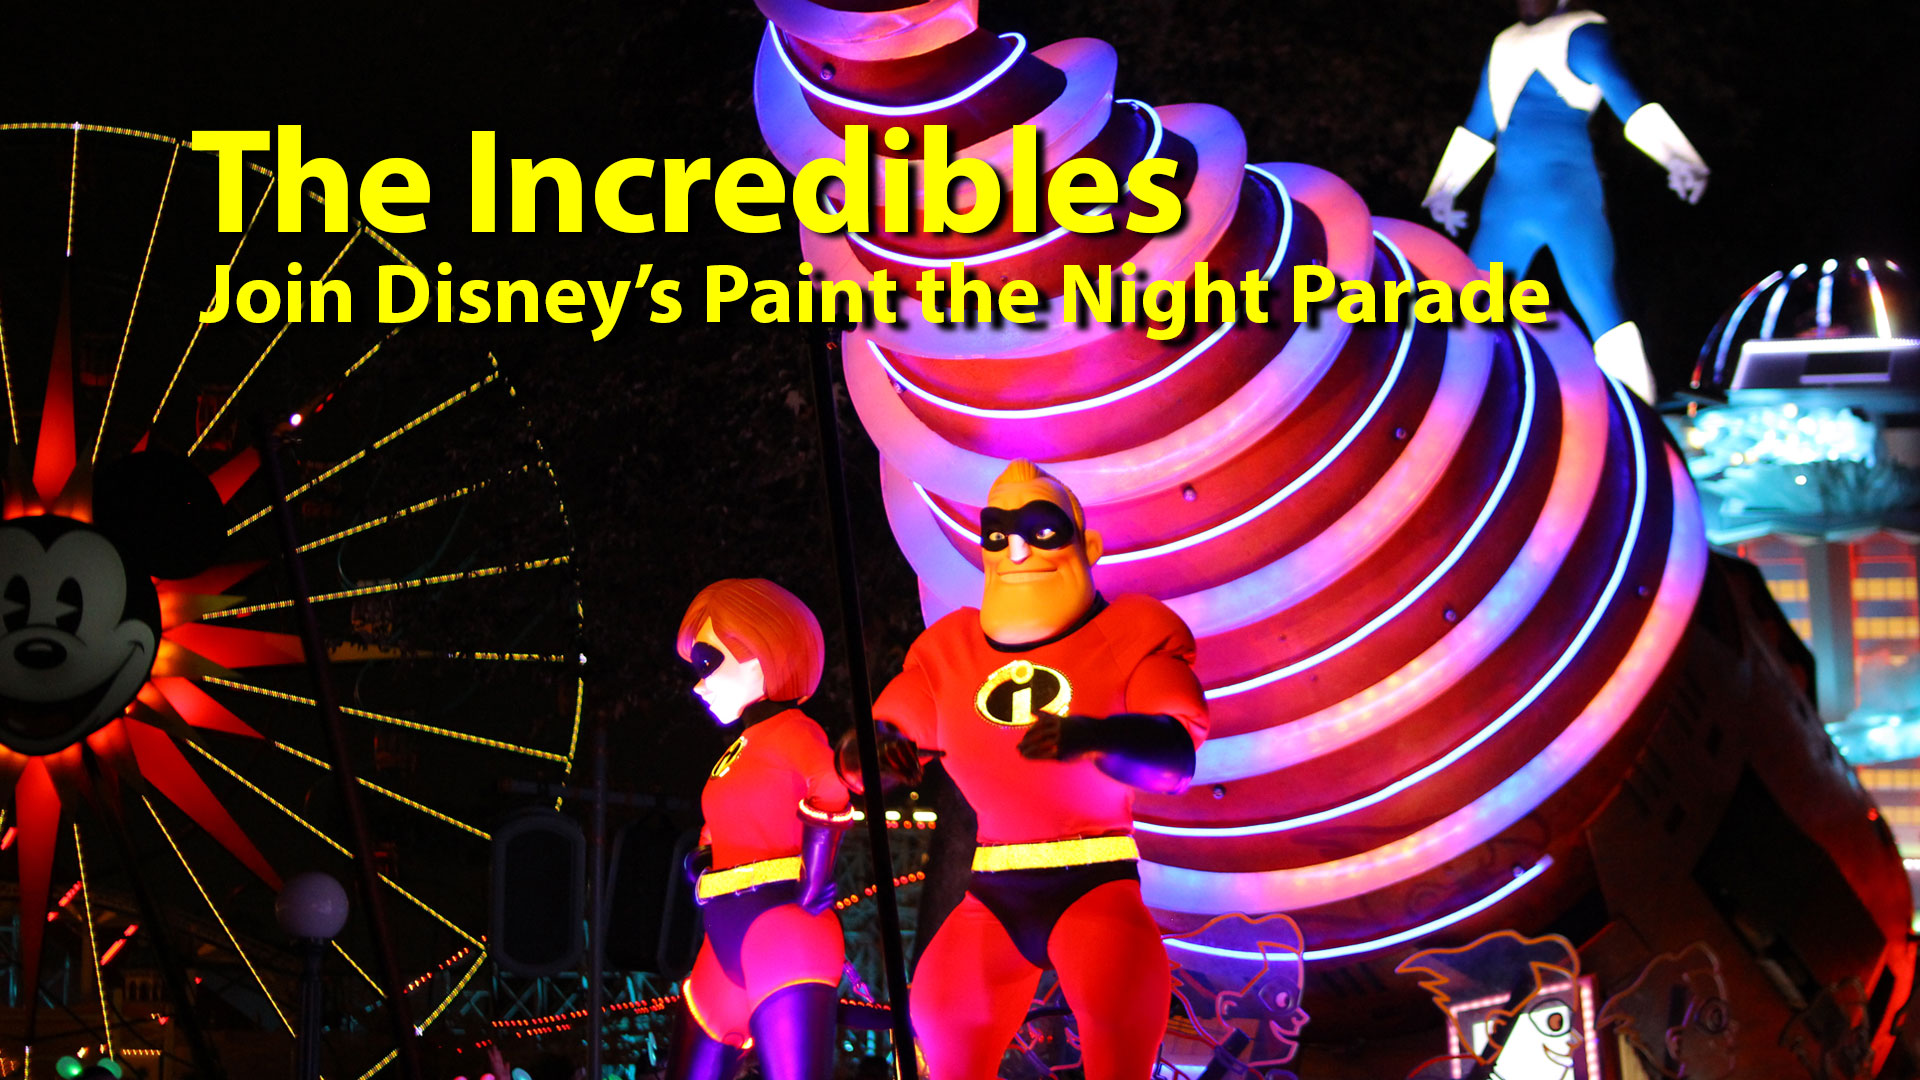 Disney's Paint the Night Parade Gets Even More Incredible With Pixar Pier Opening!